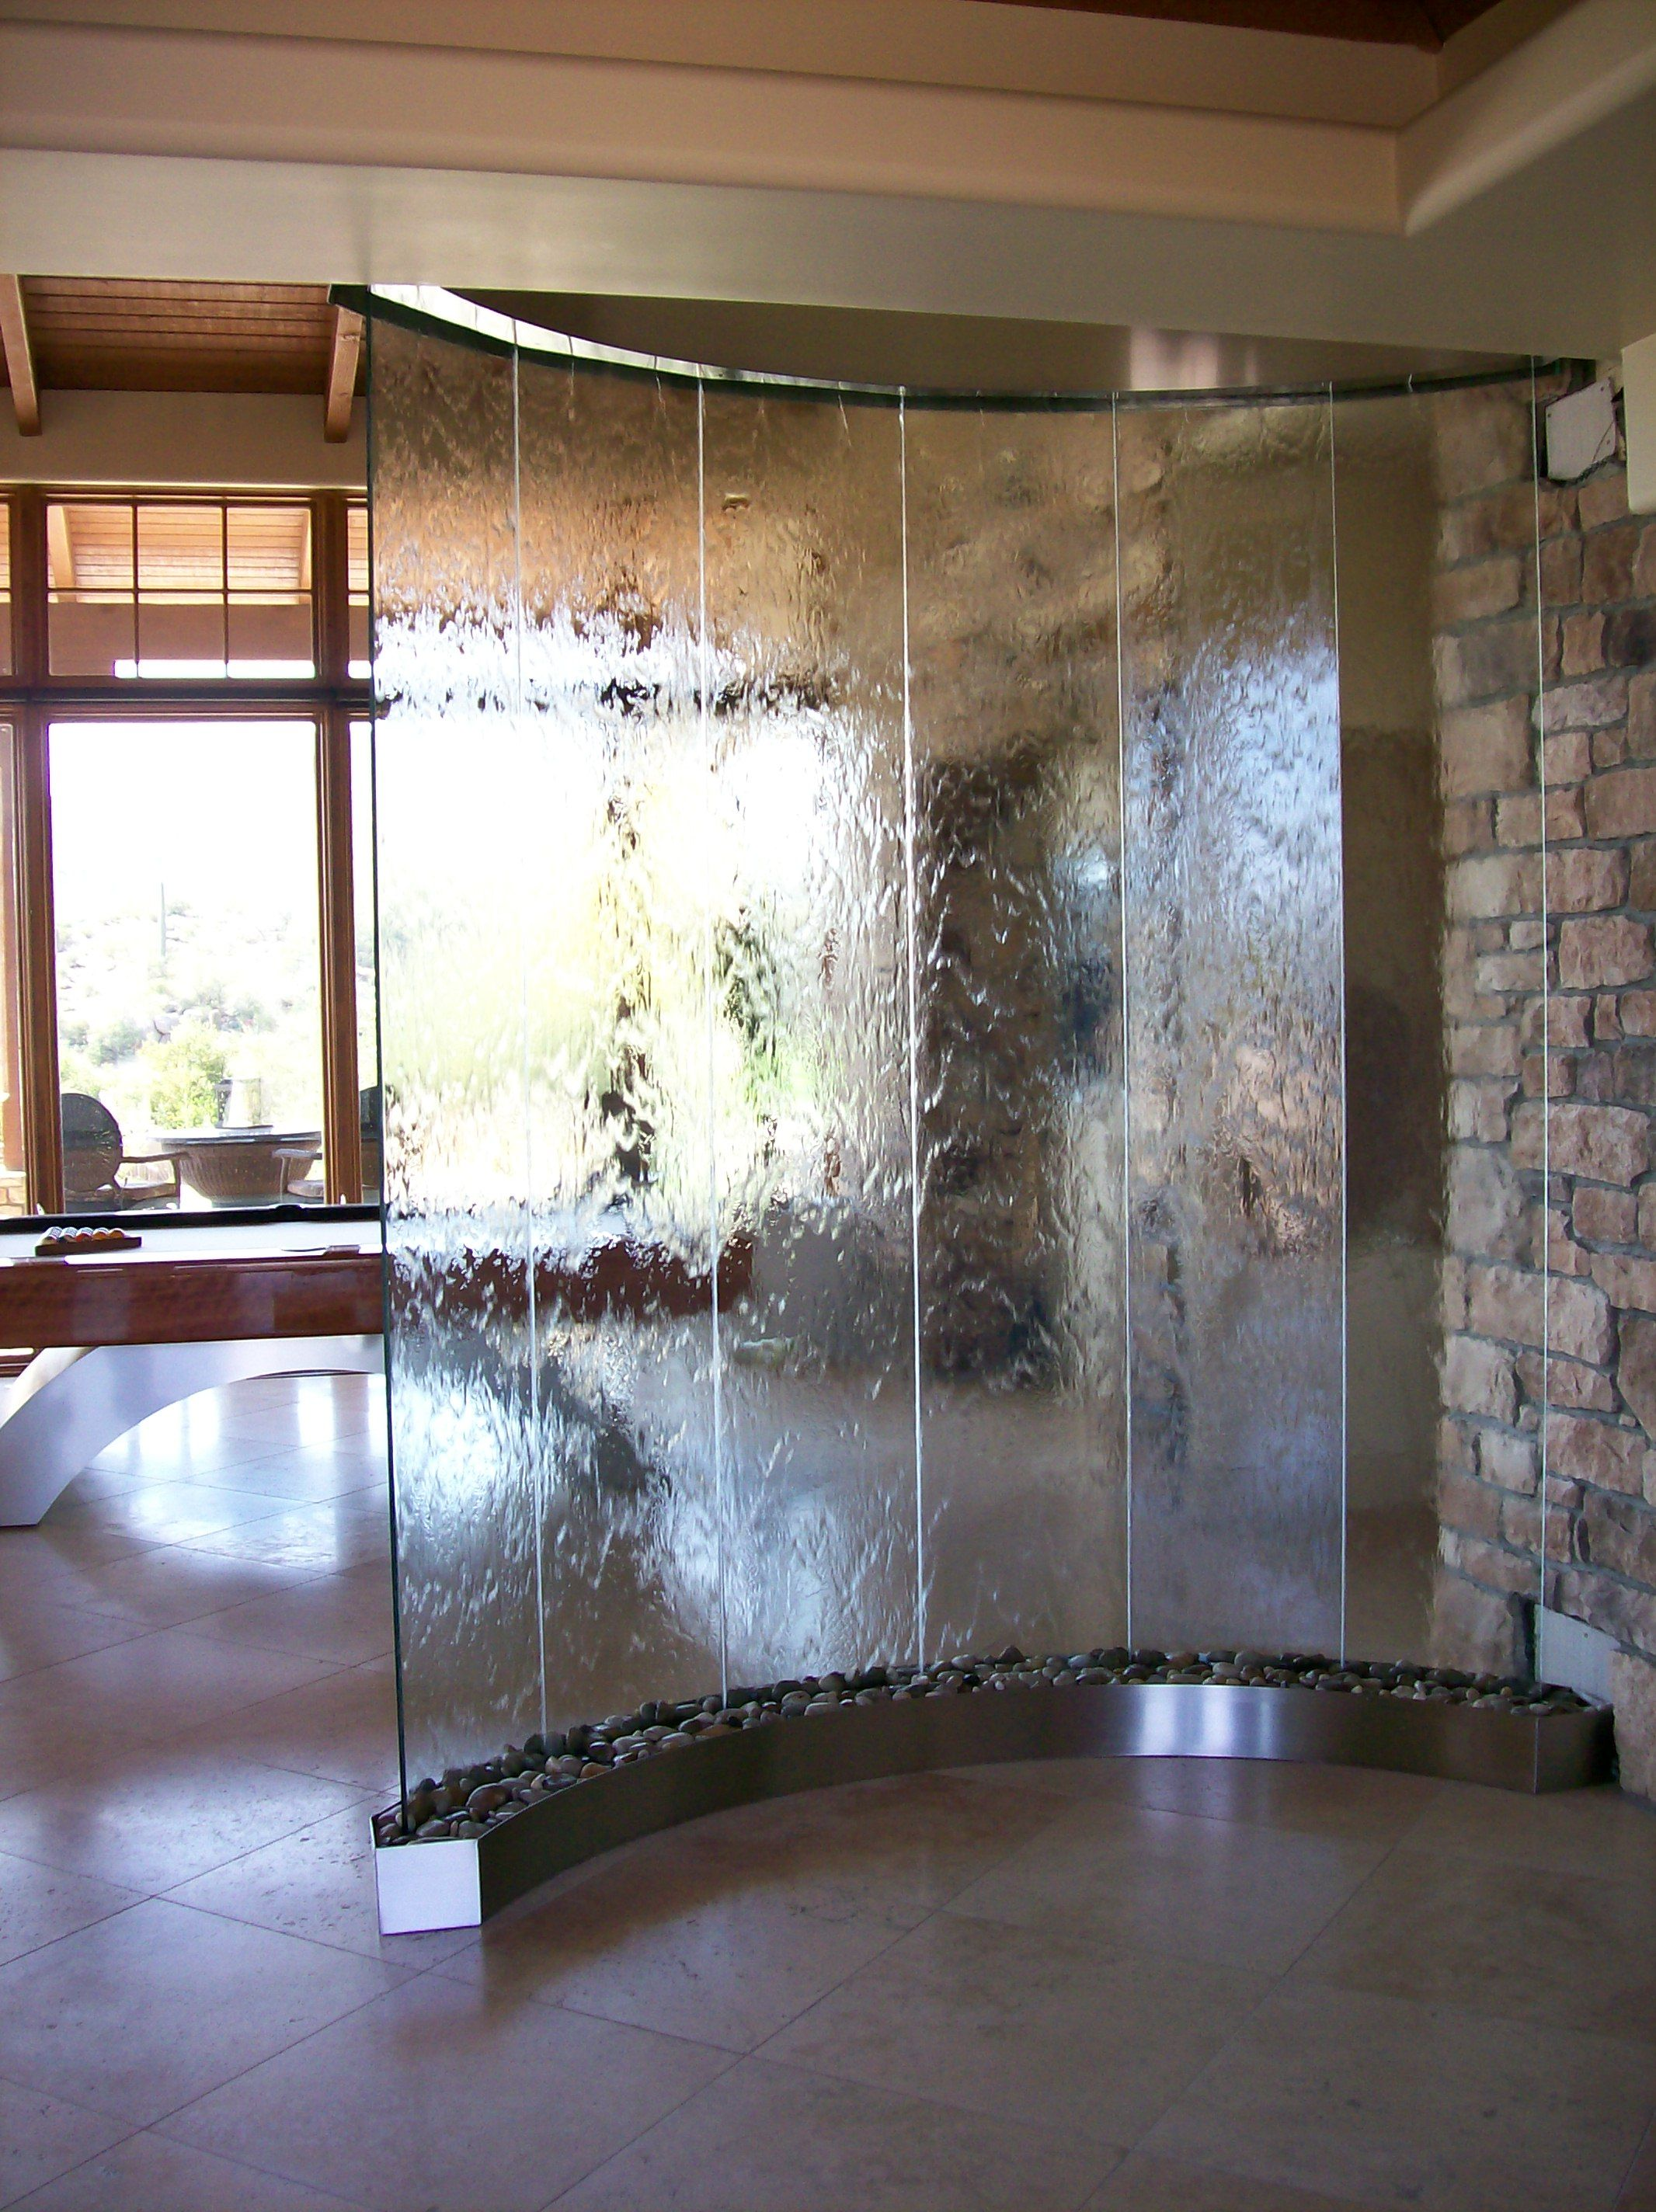 Glass Wall Fountains Indoor | Water Fountains | Pinterest | Wall ...